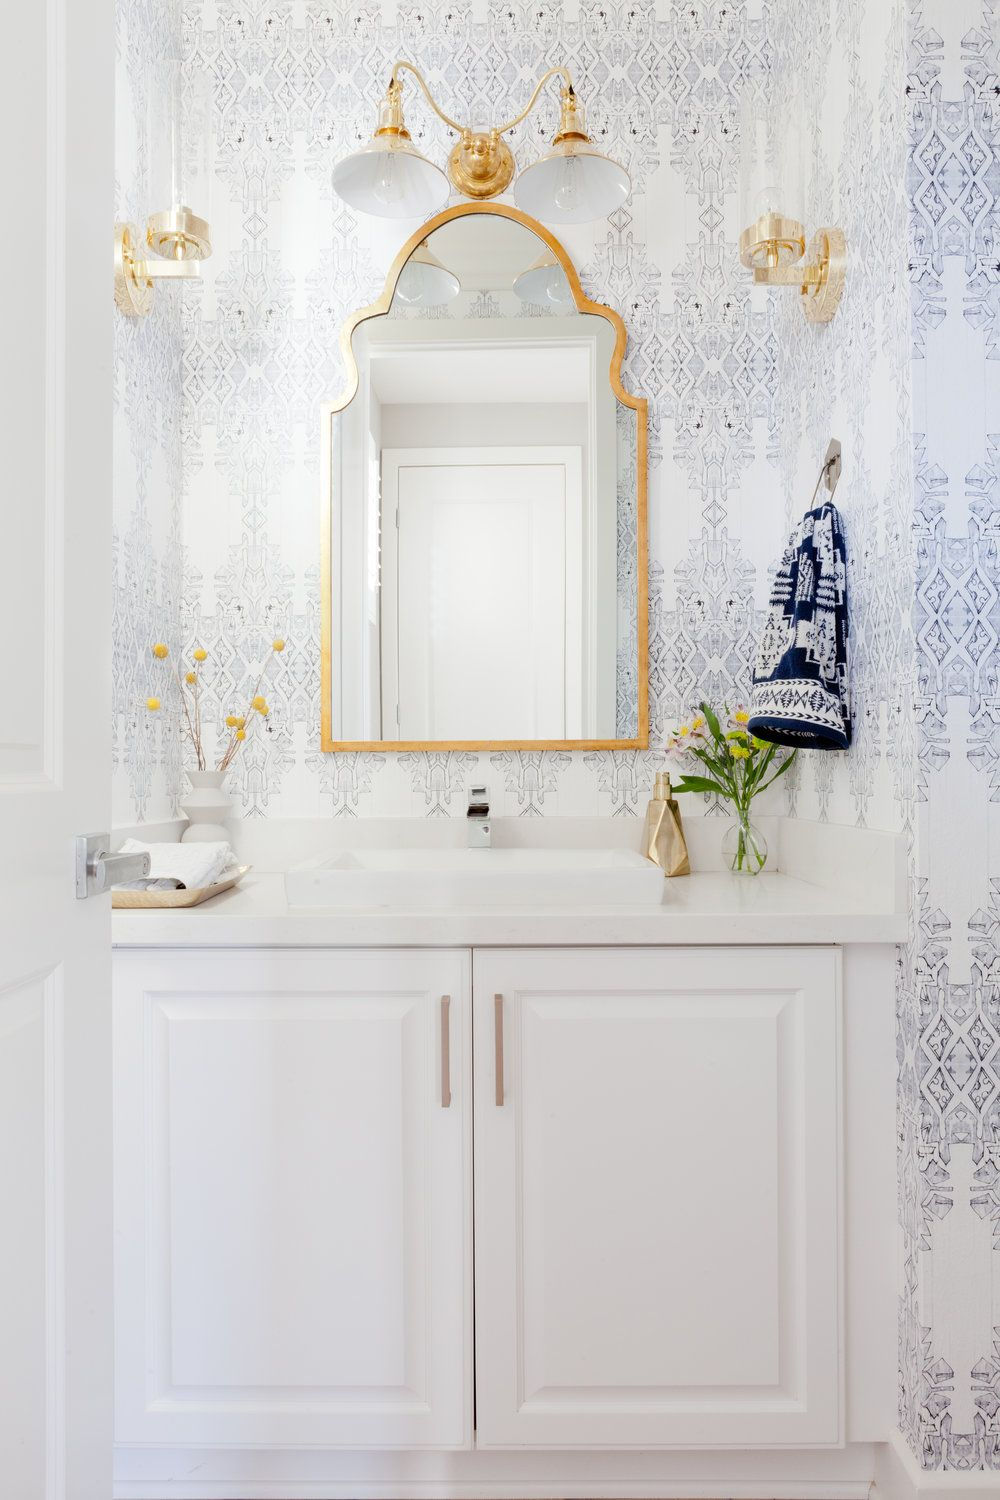 White Bathroom with White & Blue Wallpaper + Gold Accents - Veneer ...